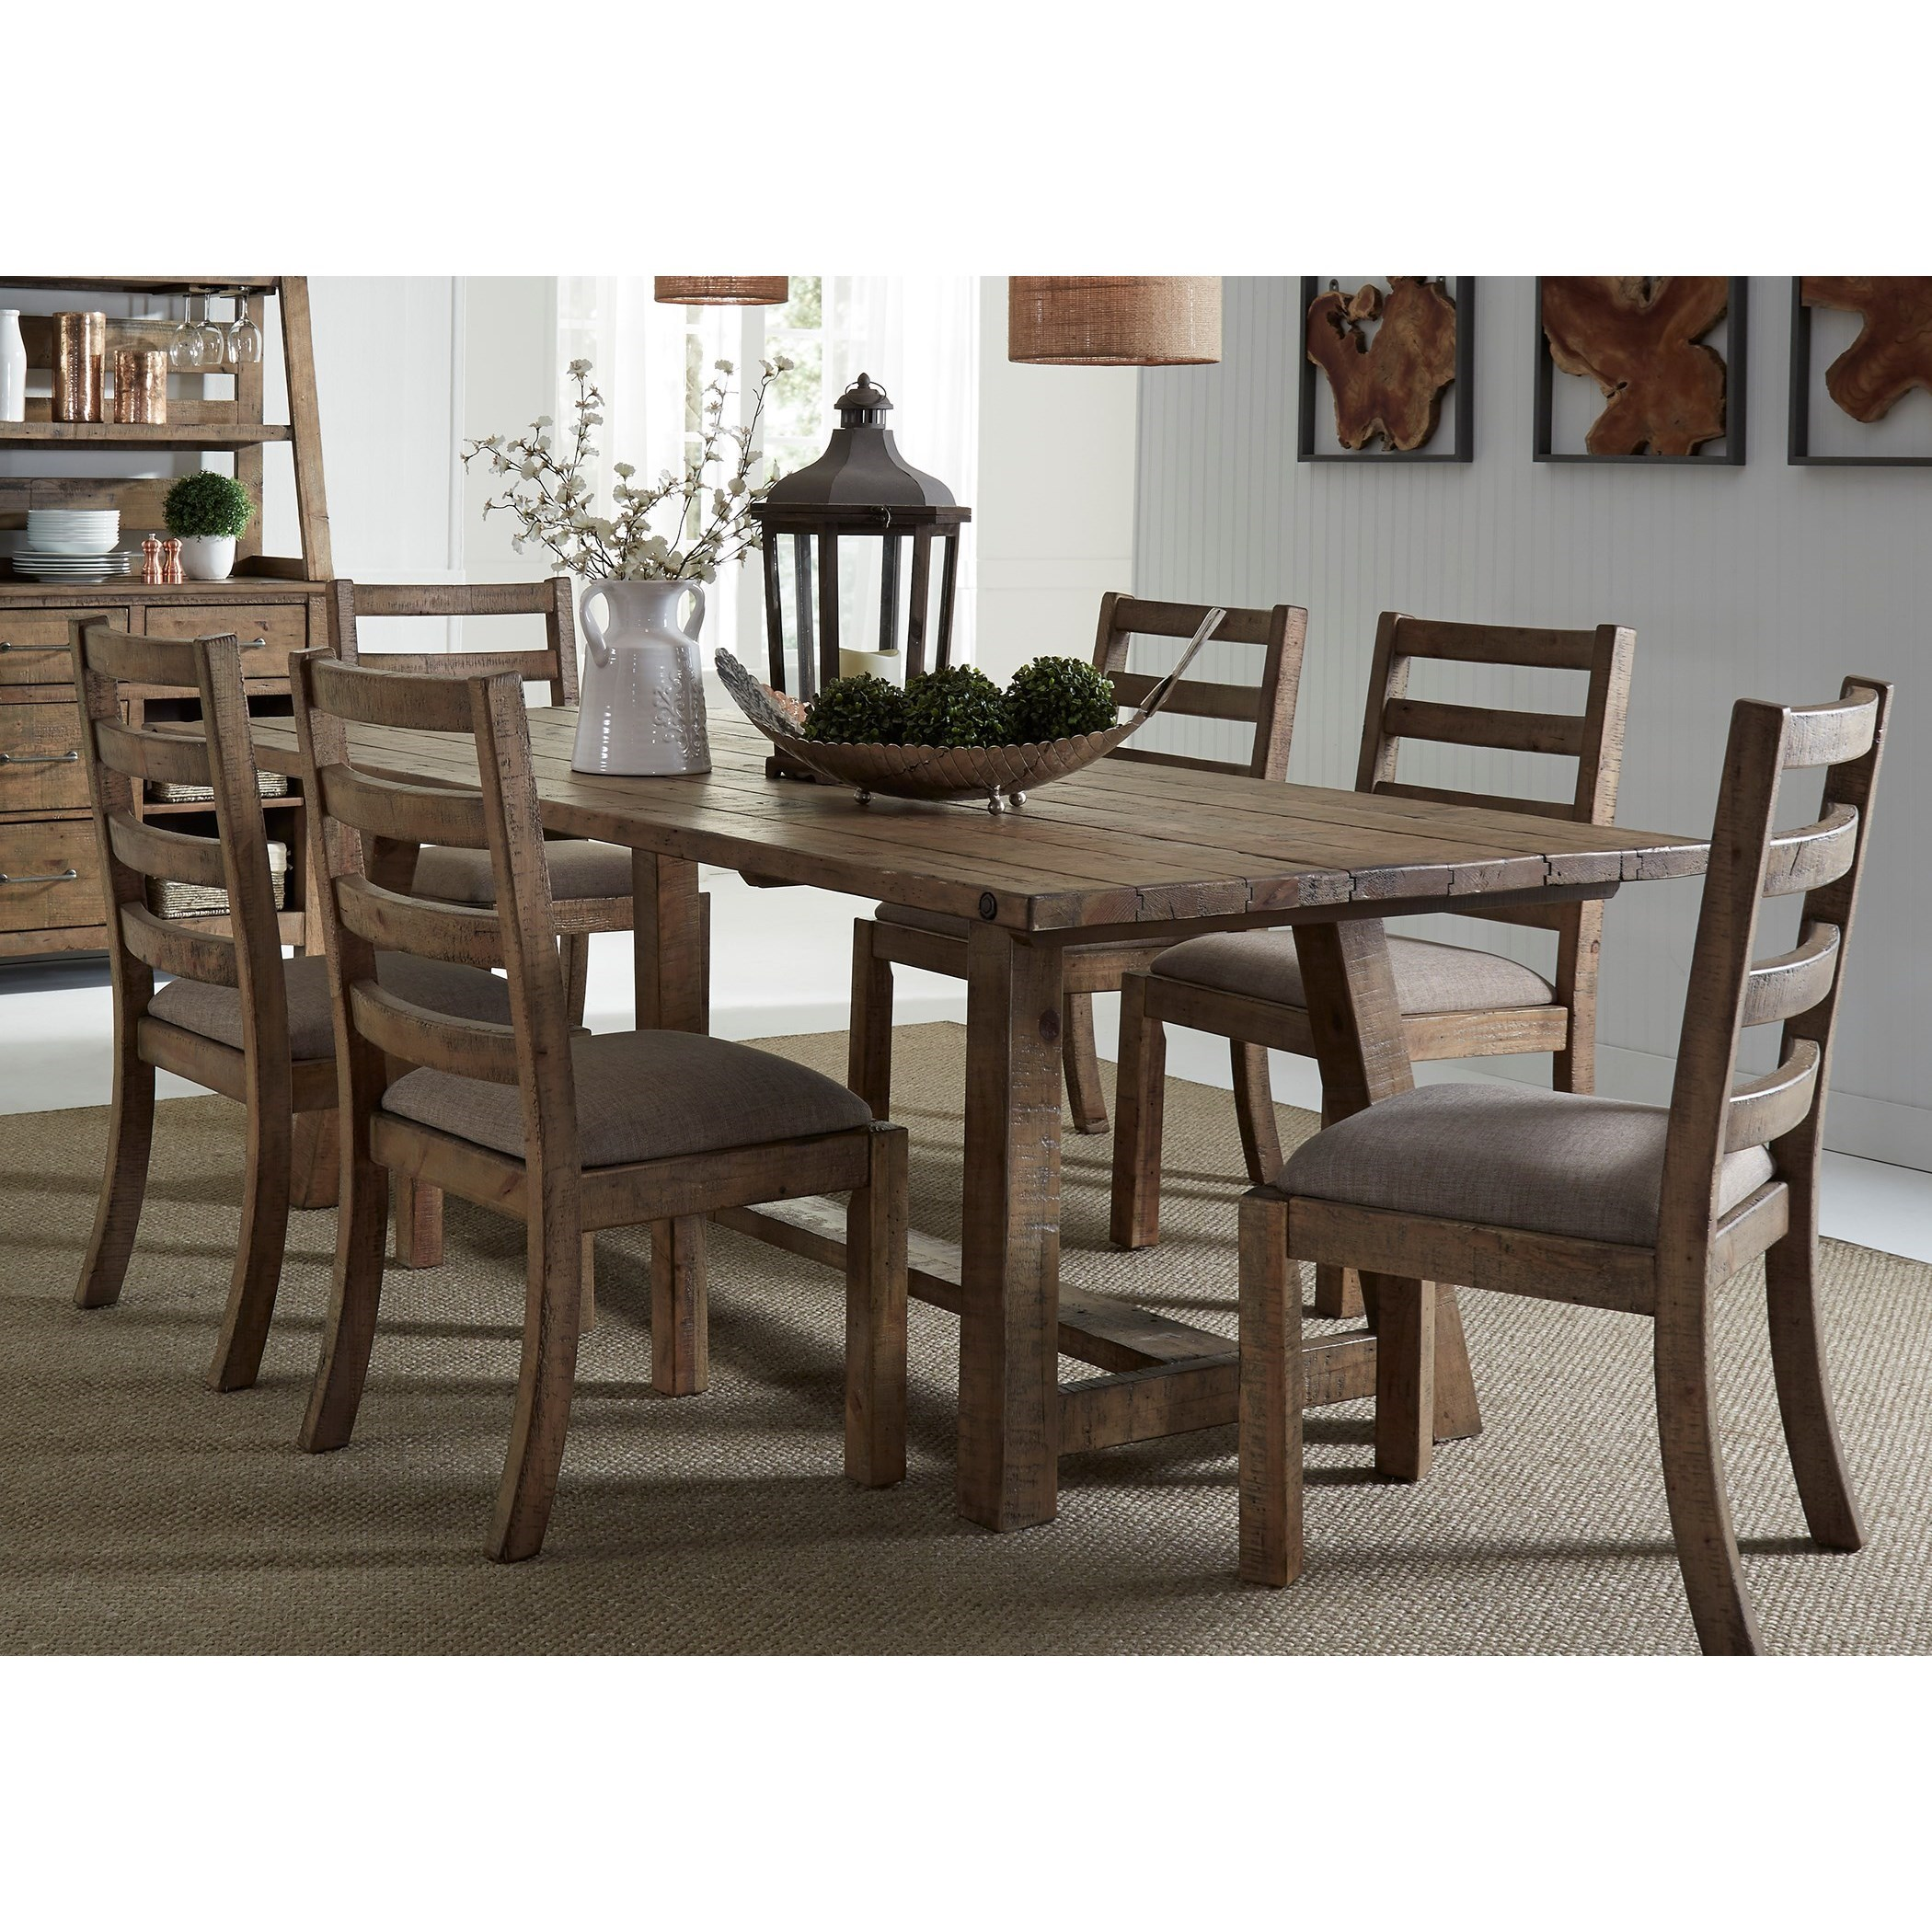 Liberty Furniture Prescott Valley Dining 7 Piece Table U0026 Chair Set   Item  Number: 178